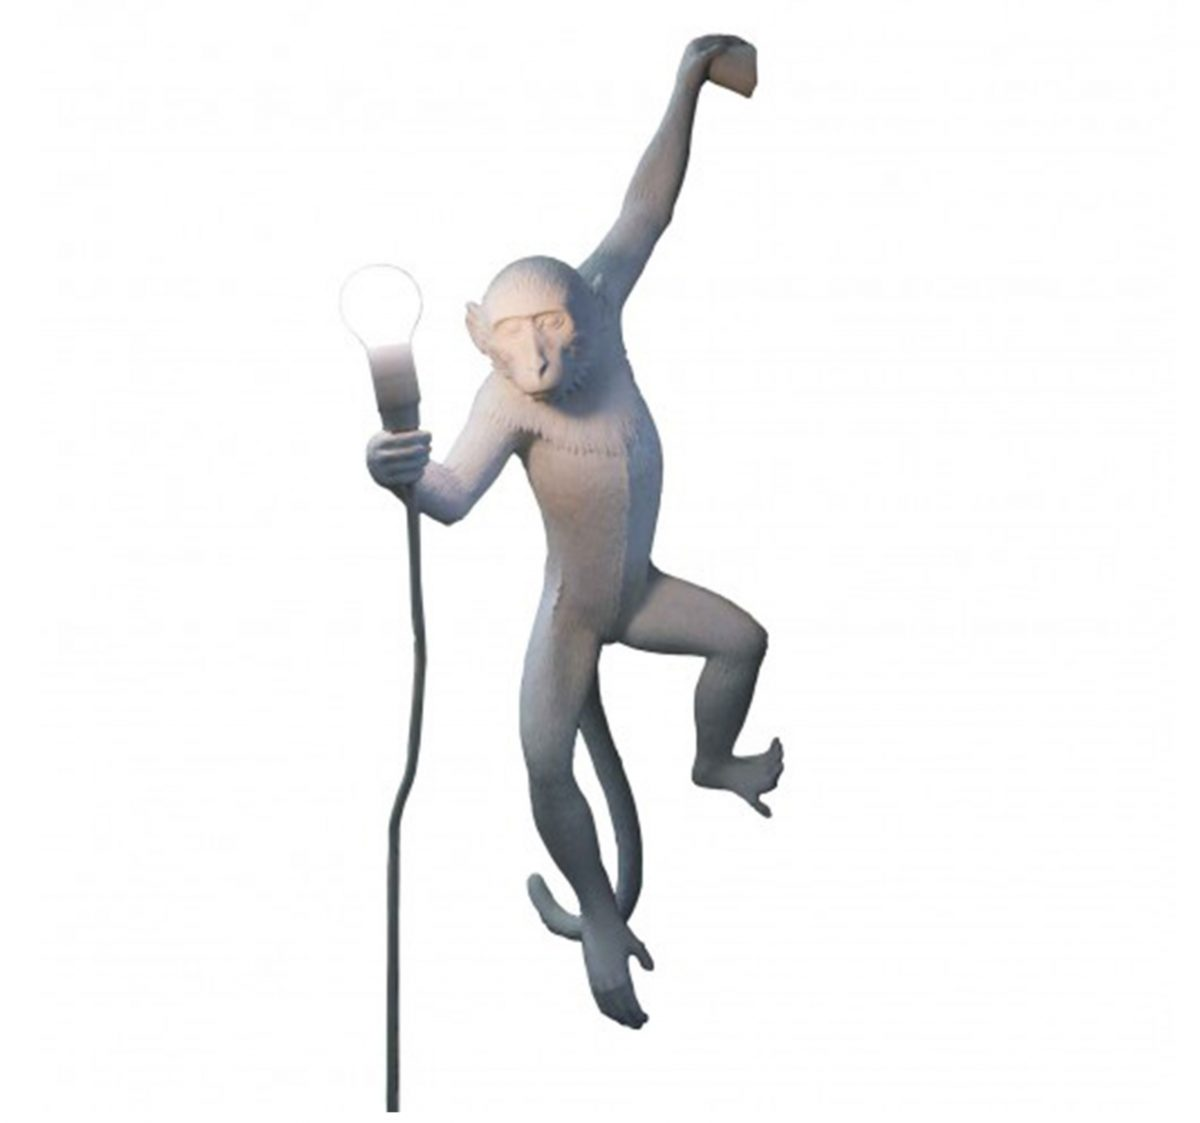 10. Hanging Monkey Lamp, M.R. Malerba for Seletti